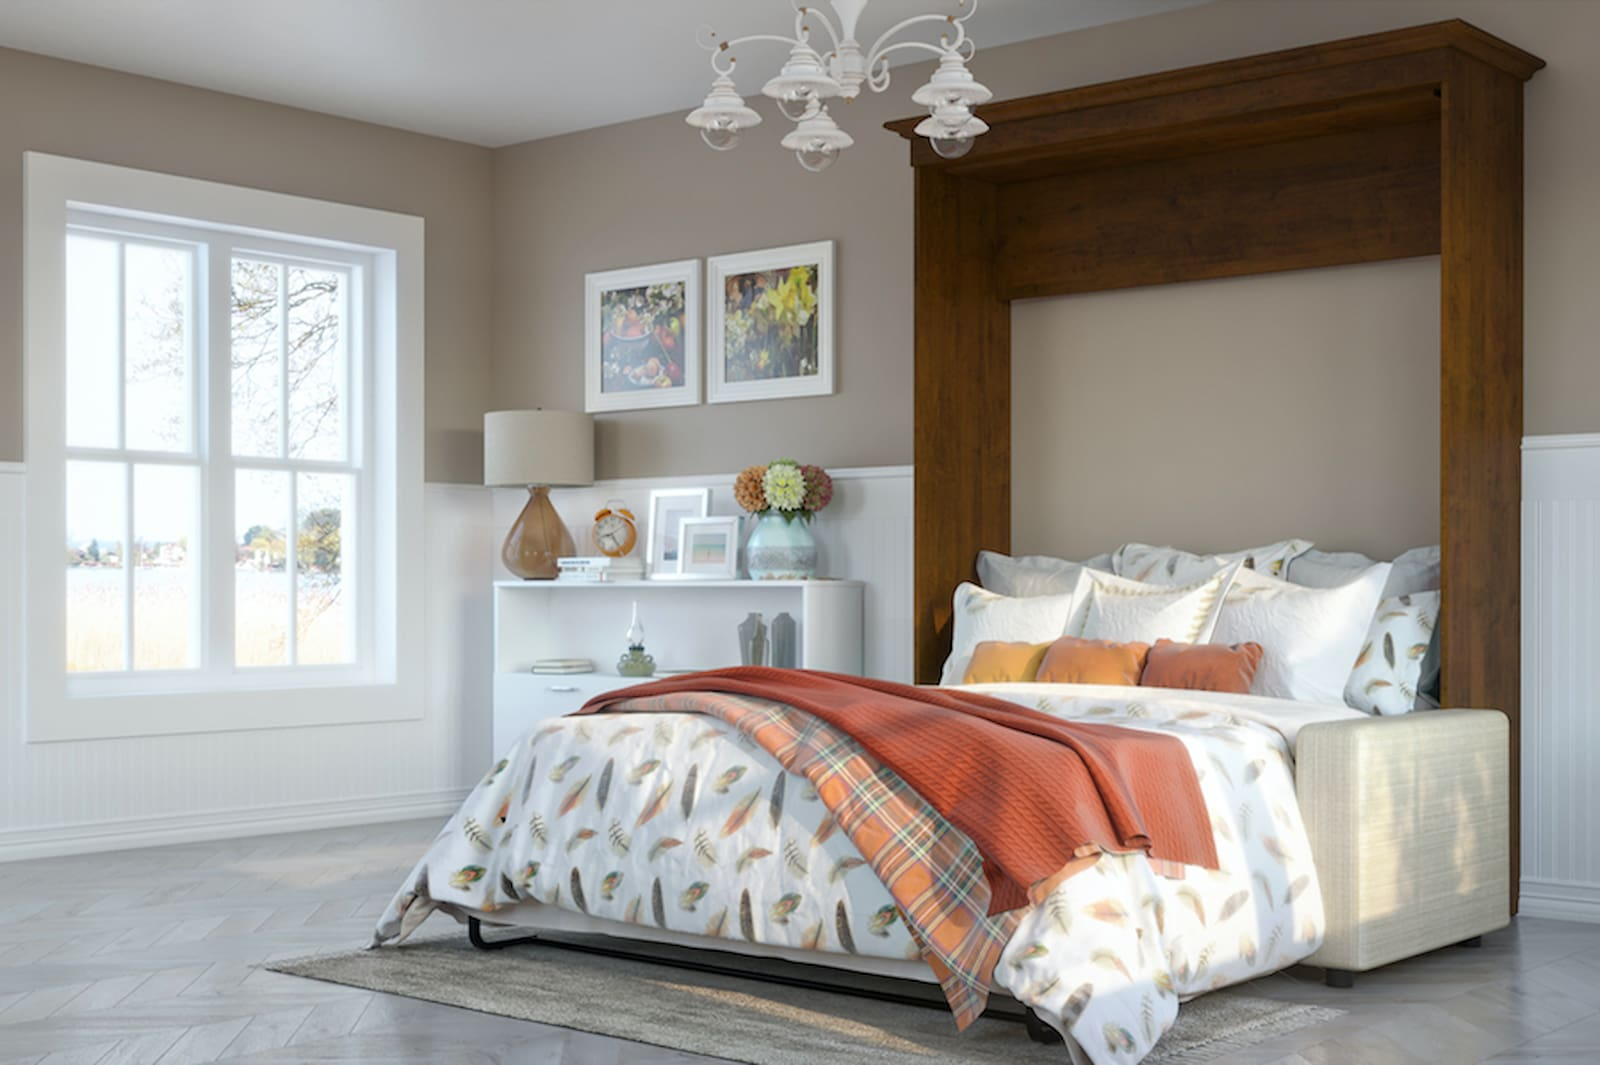 brown murphy bed with couch in room red and orange pillows and blankets